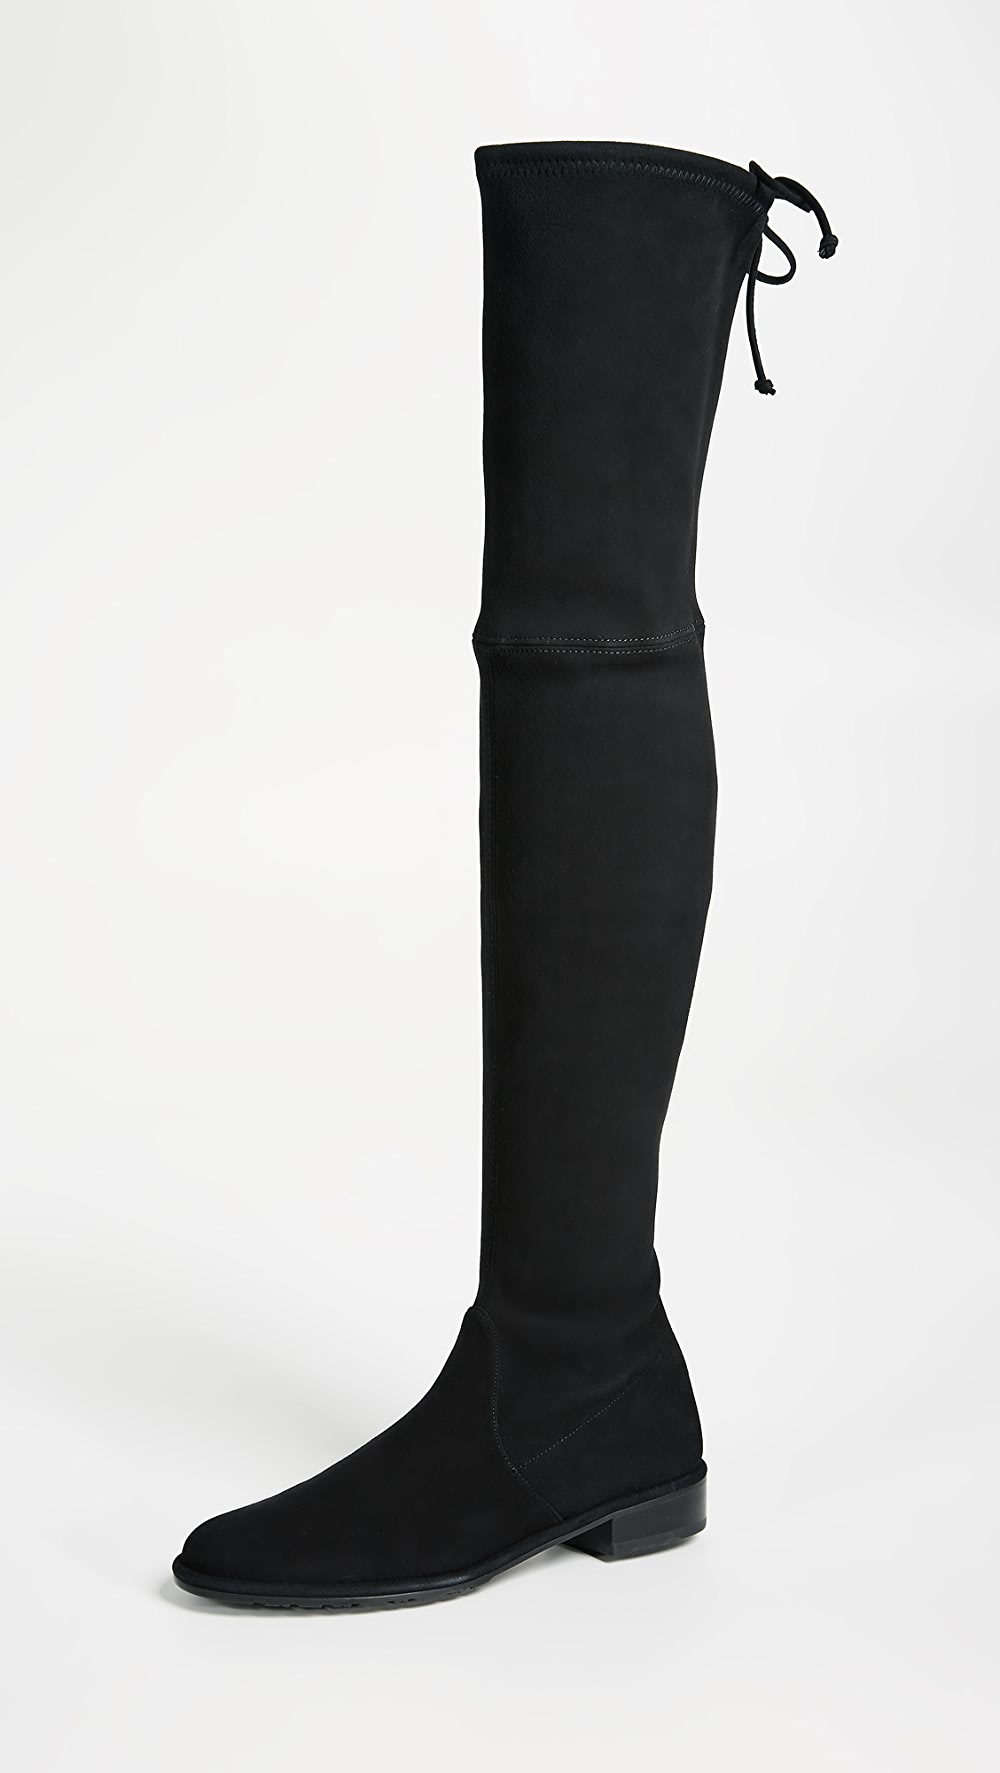 Adroit Stuart Weitzman - Lowland Over The Knee Boots Perfect In Workmanship